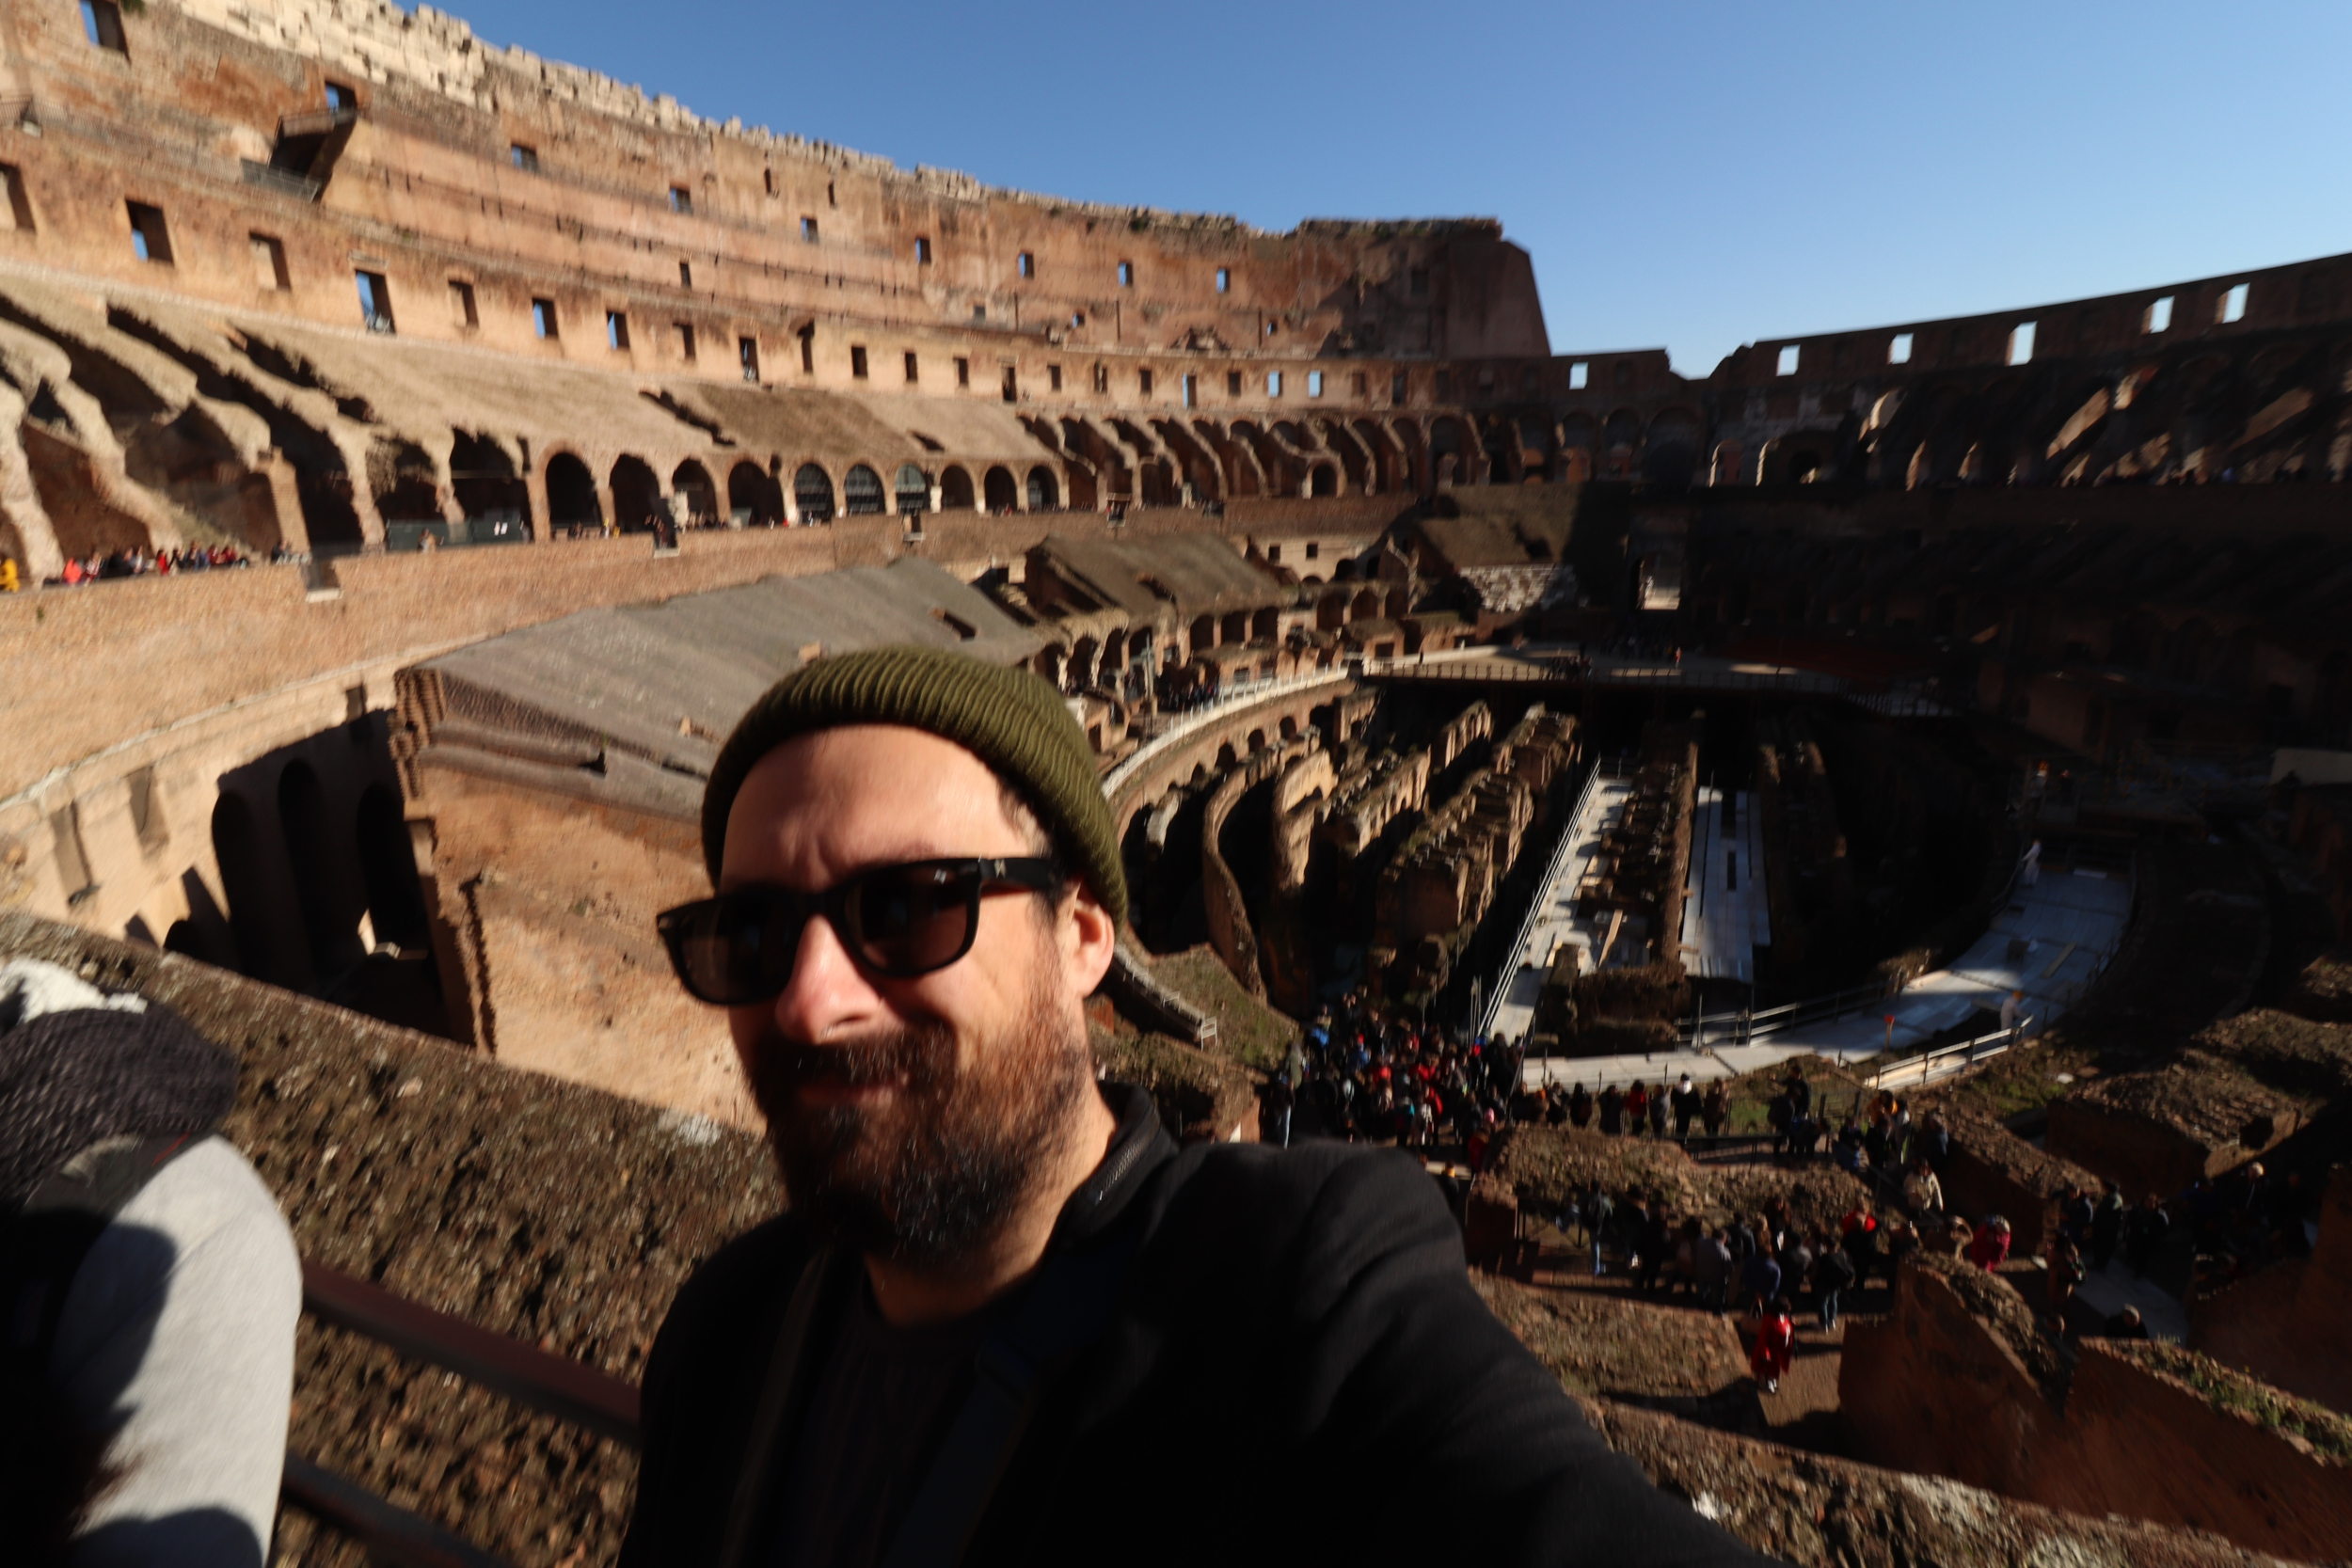 Hello from Rome!